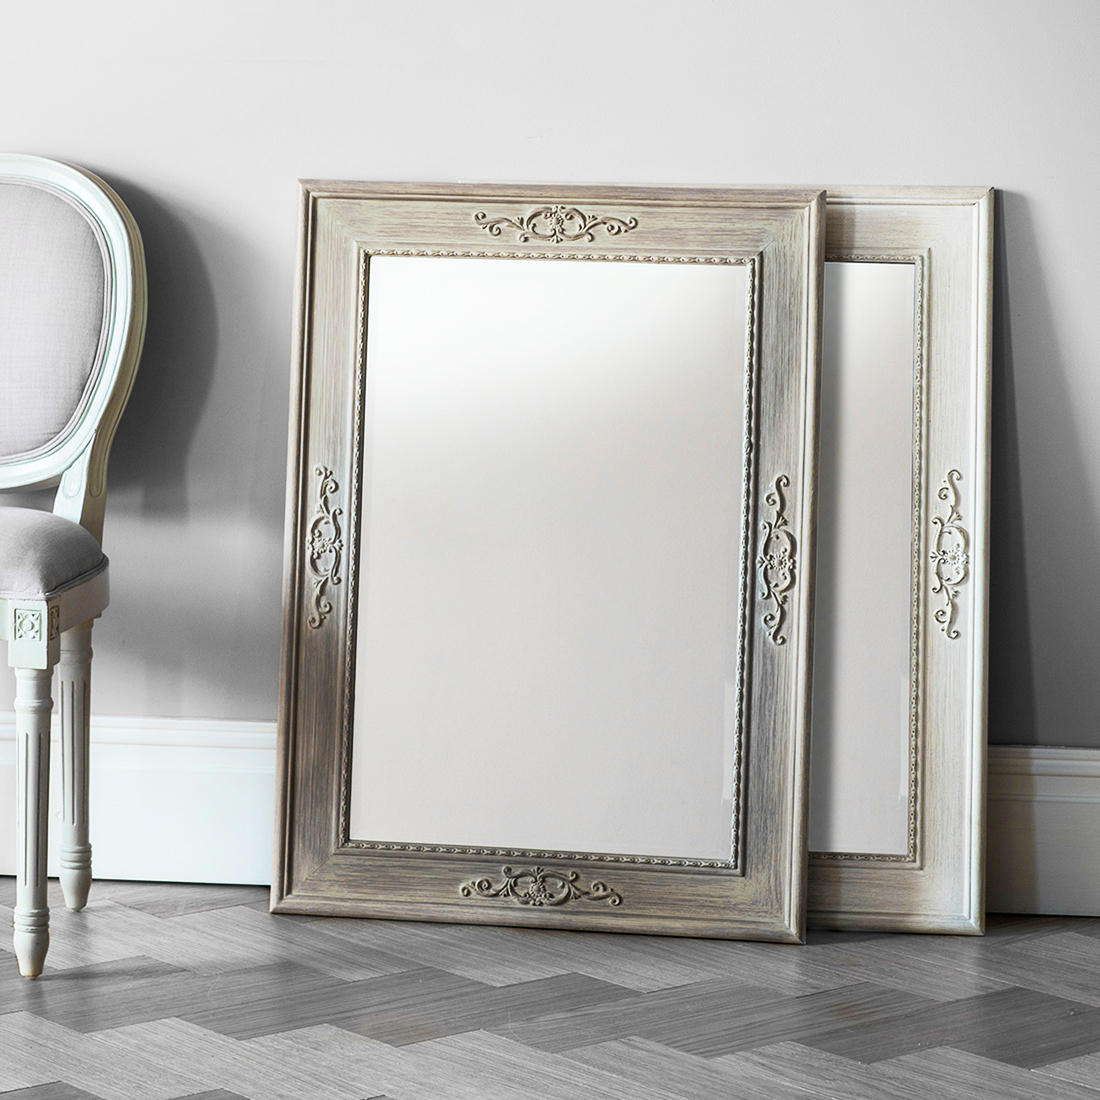 2020 Decorative Rectangular Wall Mirrors Intended For Decorative Rectangular Wooden Wall Mirrors – White Or Limed Oak (View 2 of 20)